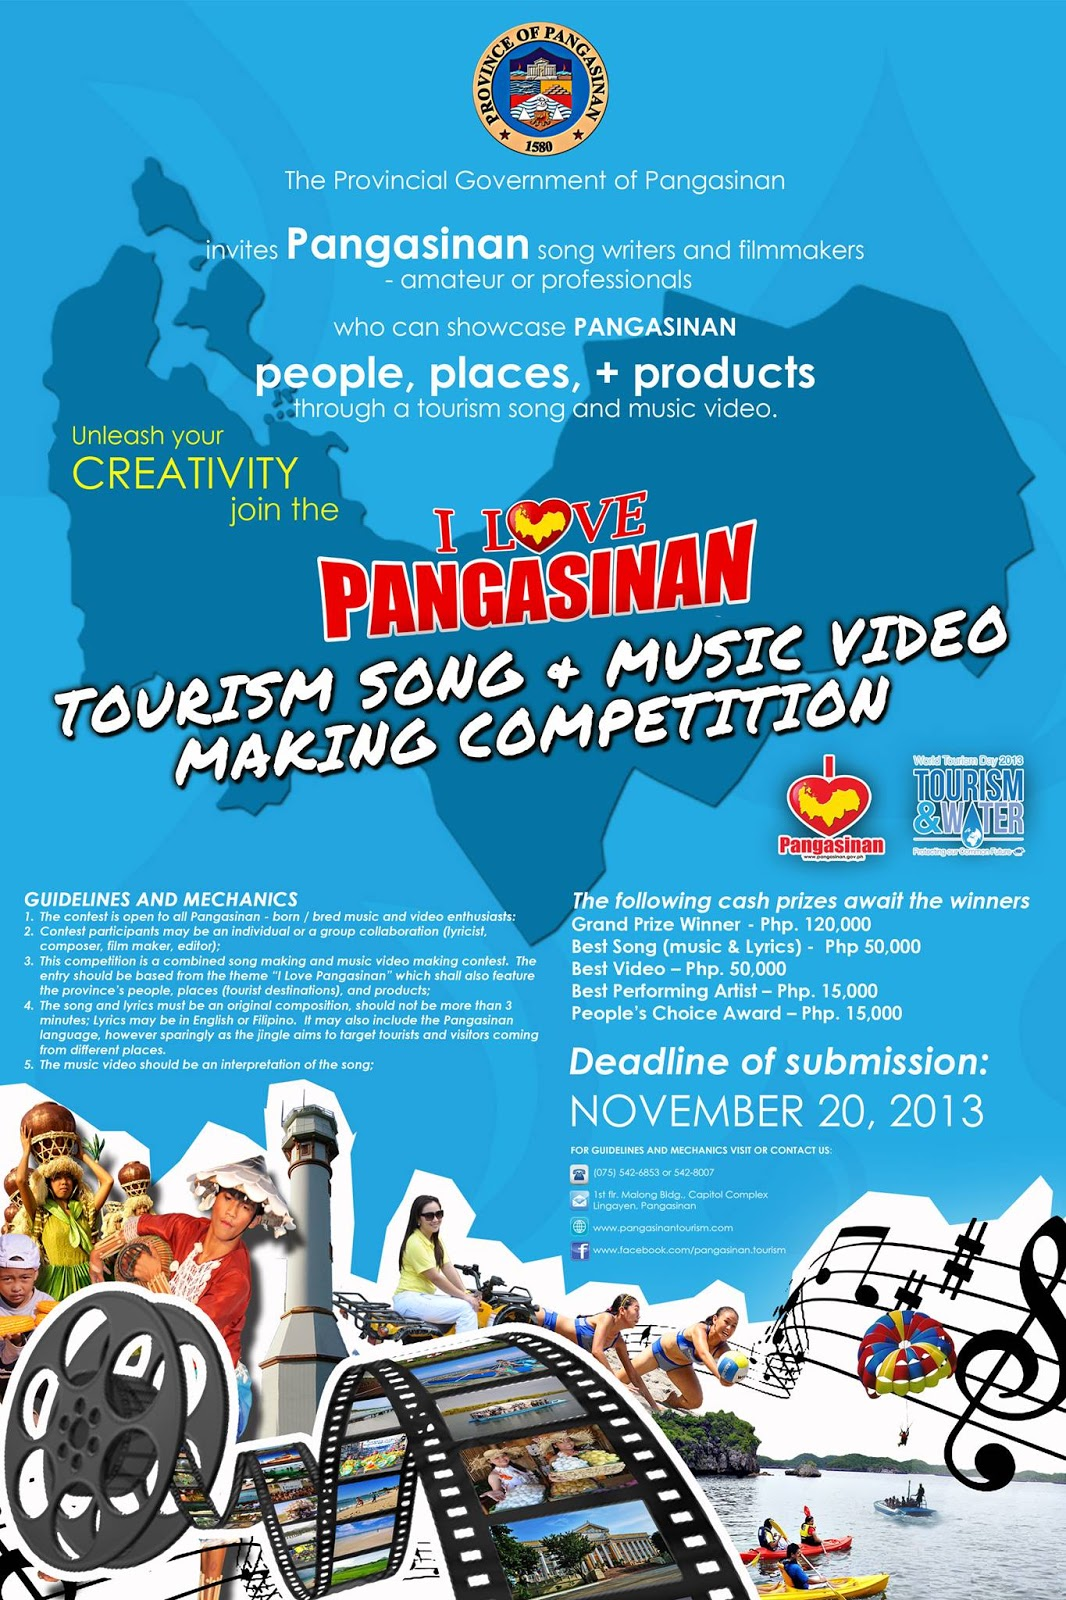 Pangasinan Tourism Song and Music Video Making Contest